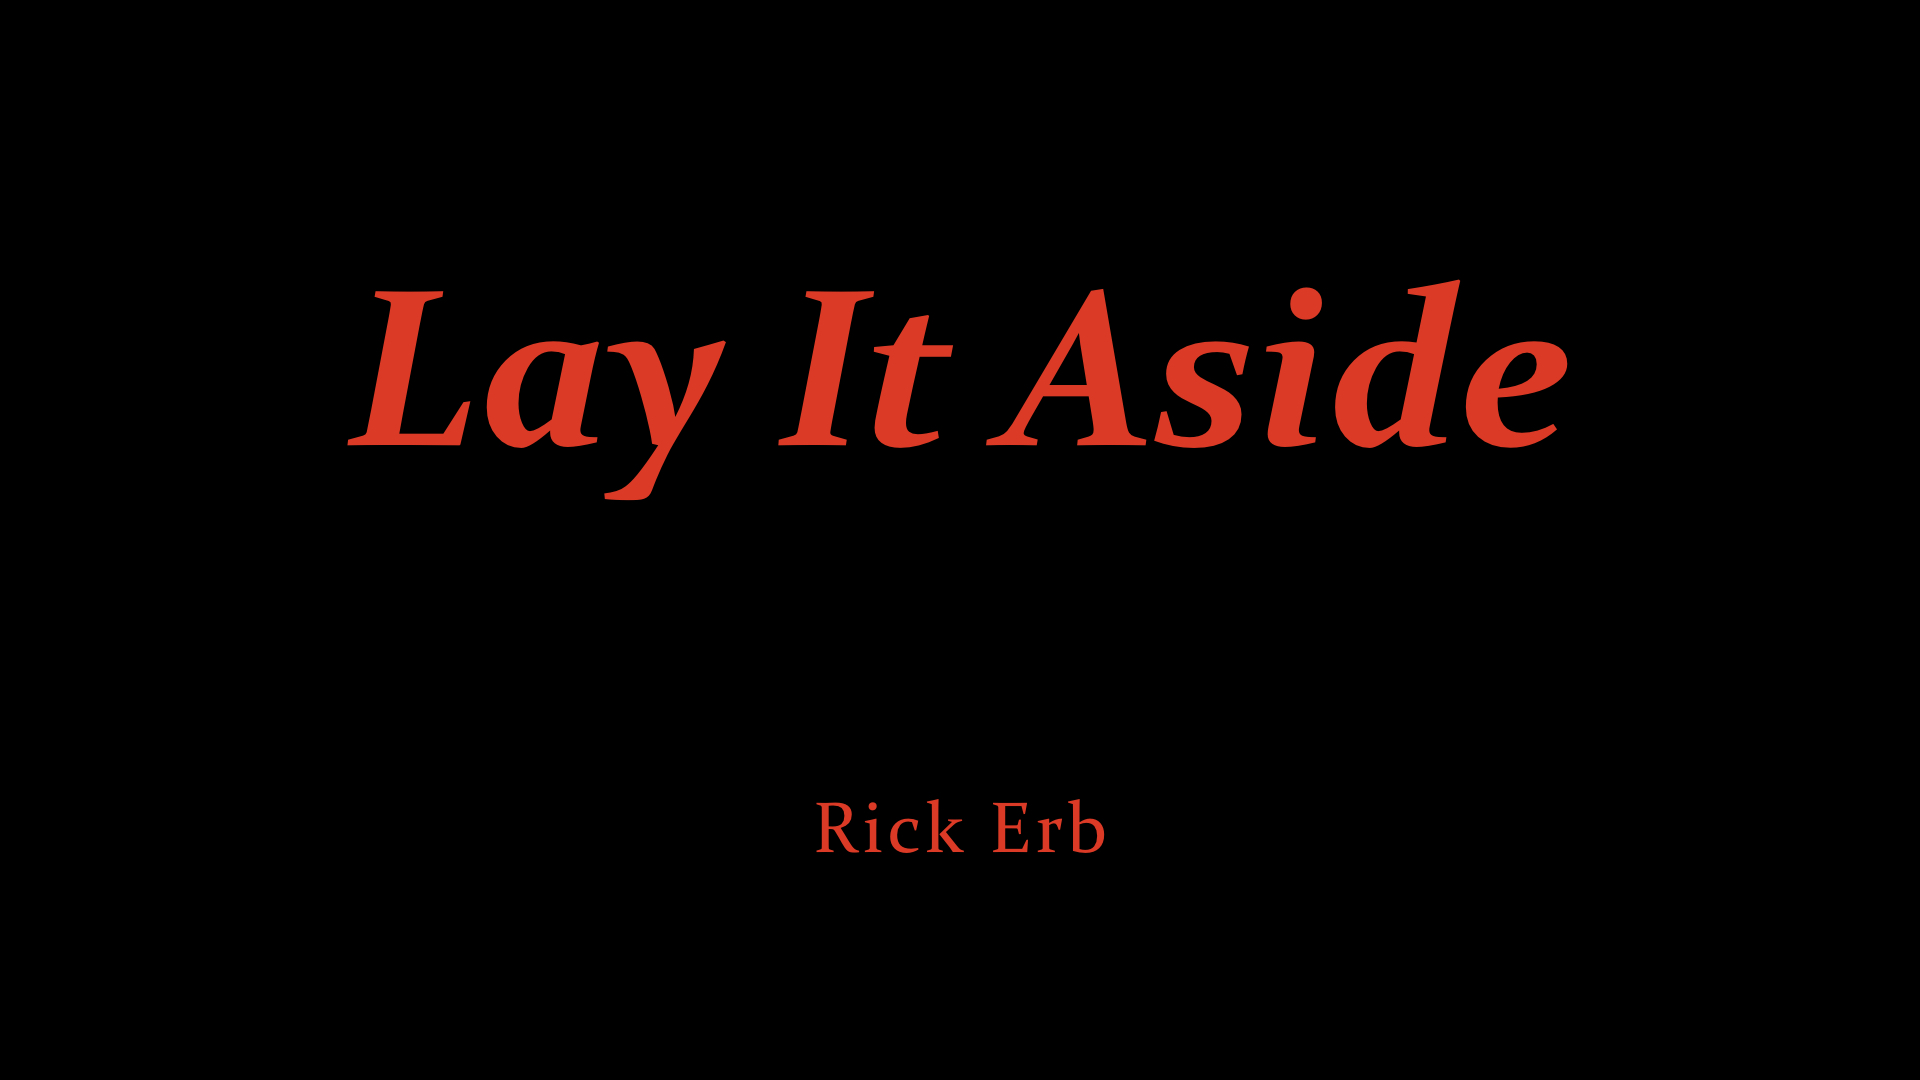 Rick Erb - Lay It Aside.jpeg